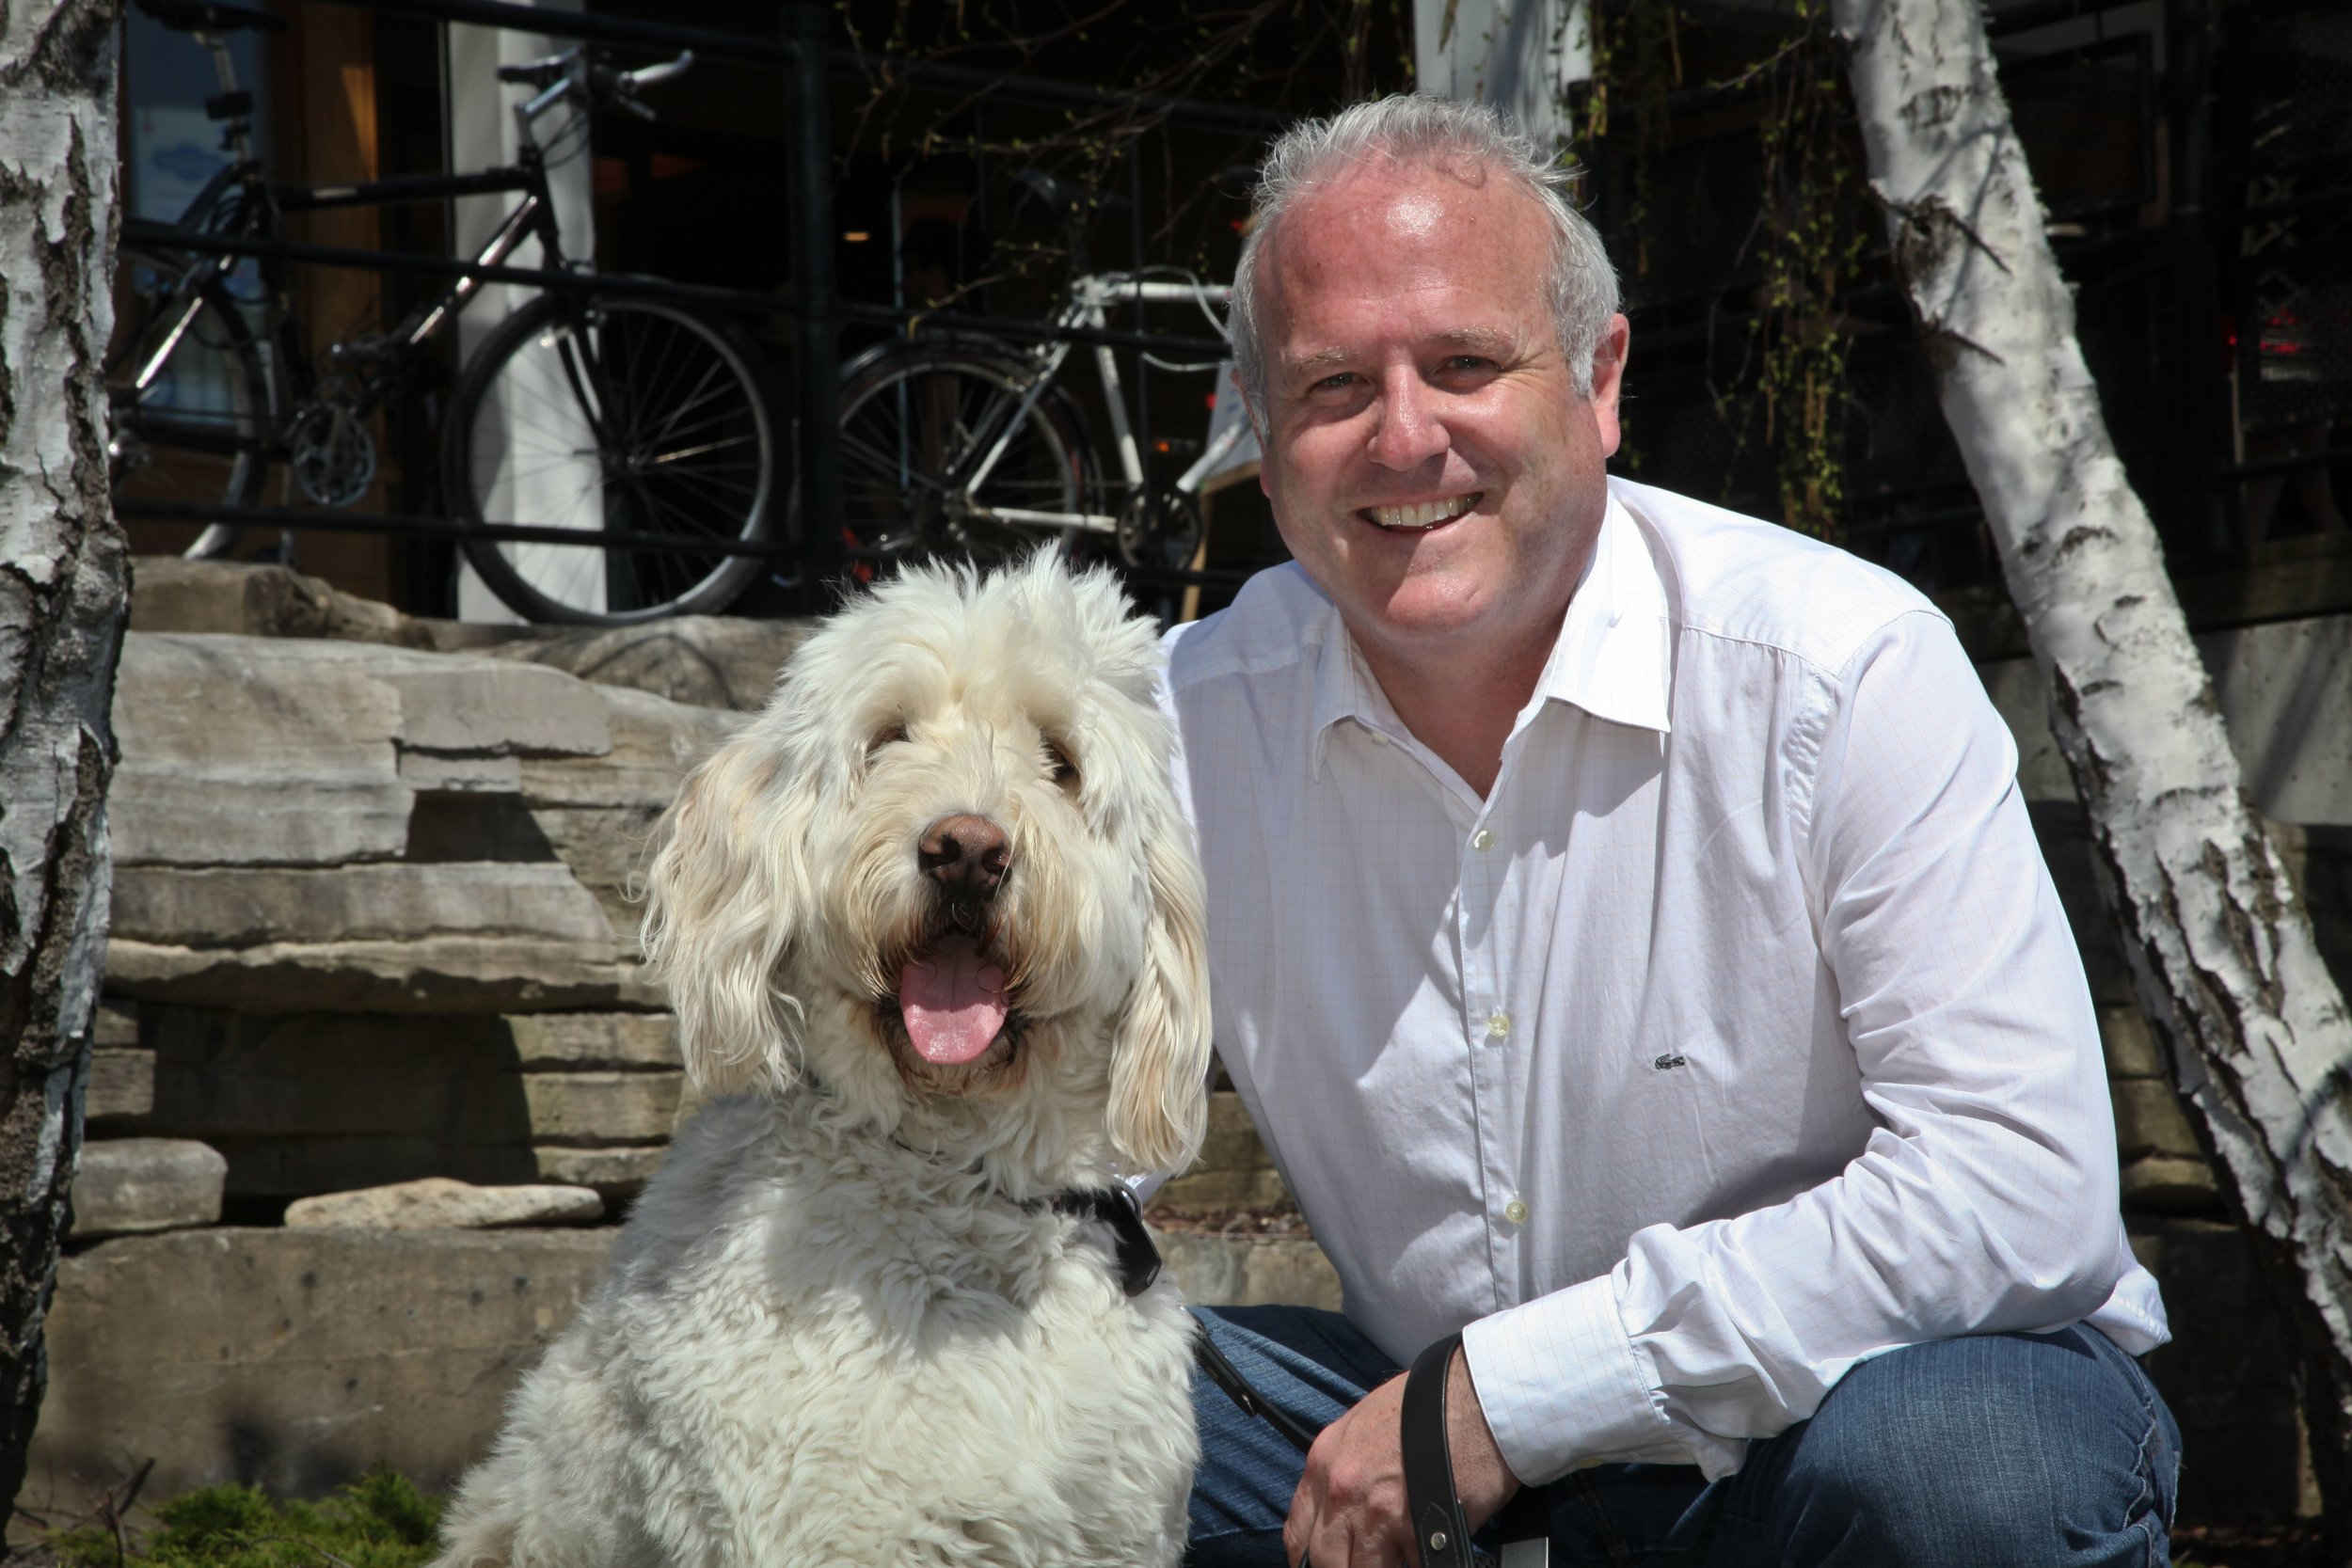 Chris White—Our Pet Project Campaign Chair & Director, Board of Directors, Peterborough Humane Society—with his dog, Dexter